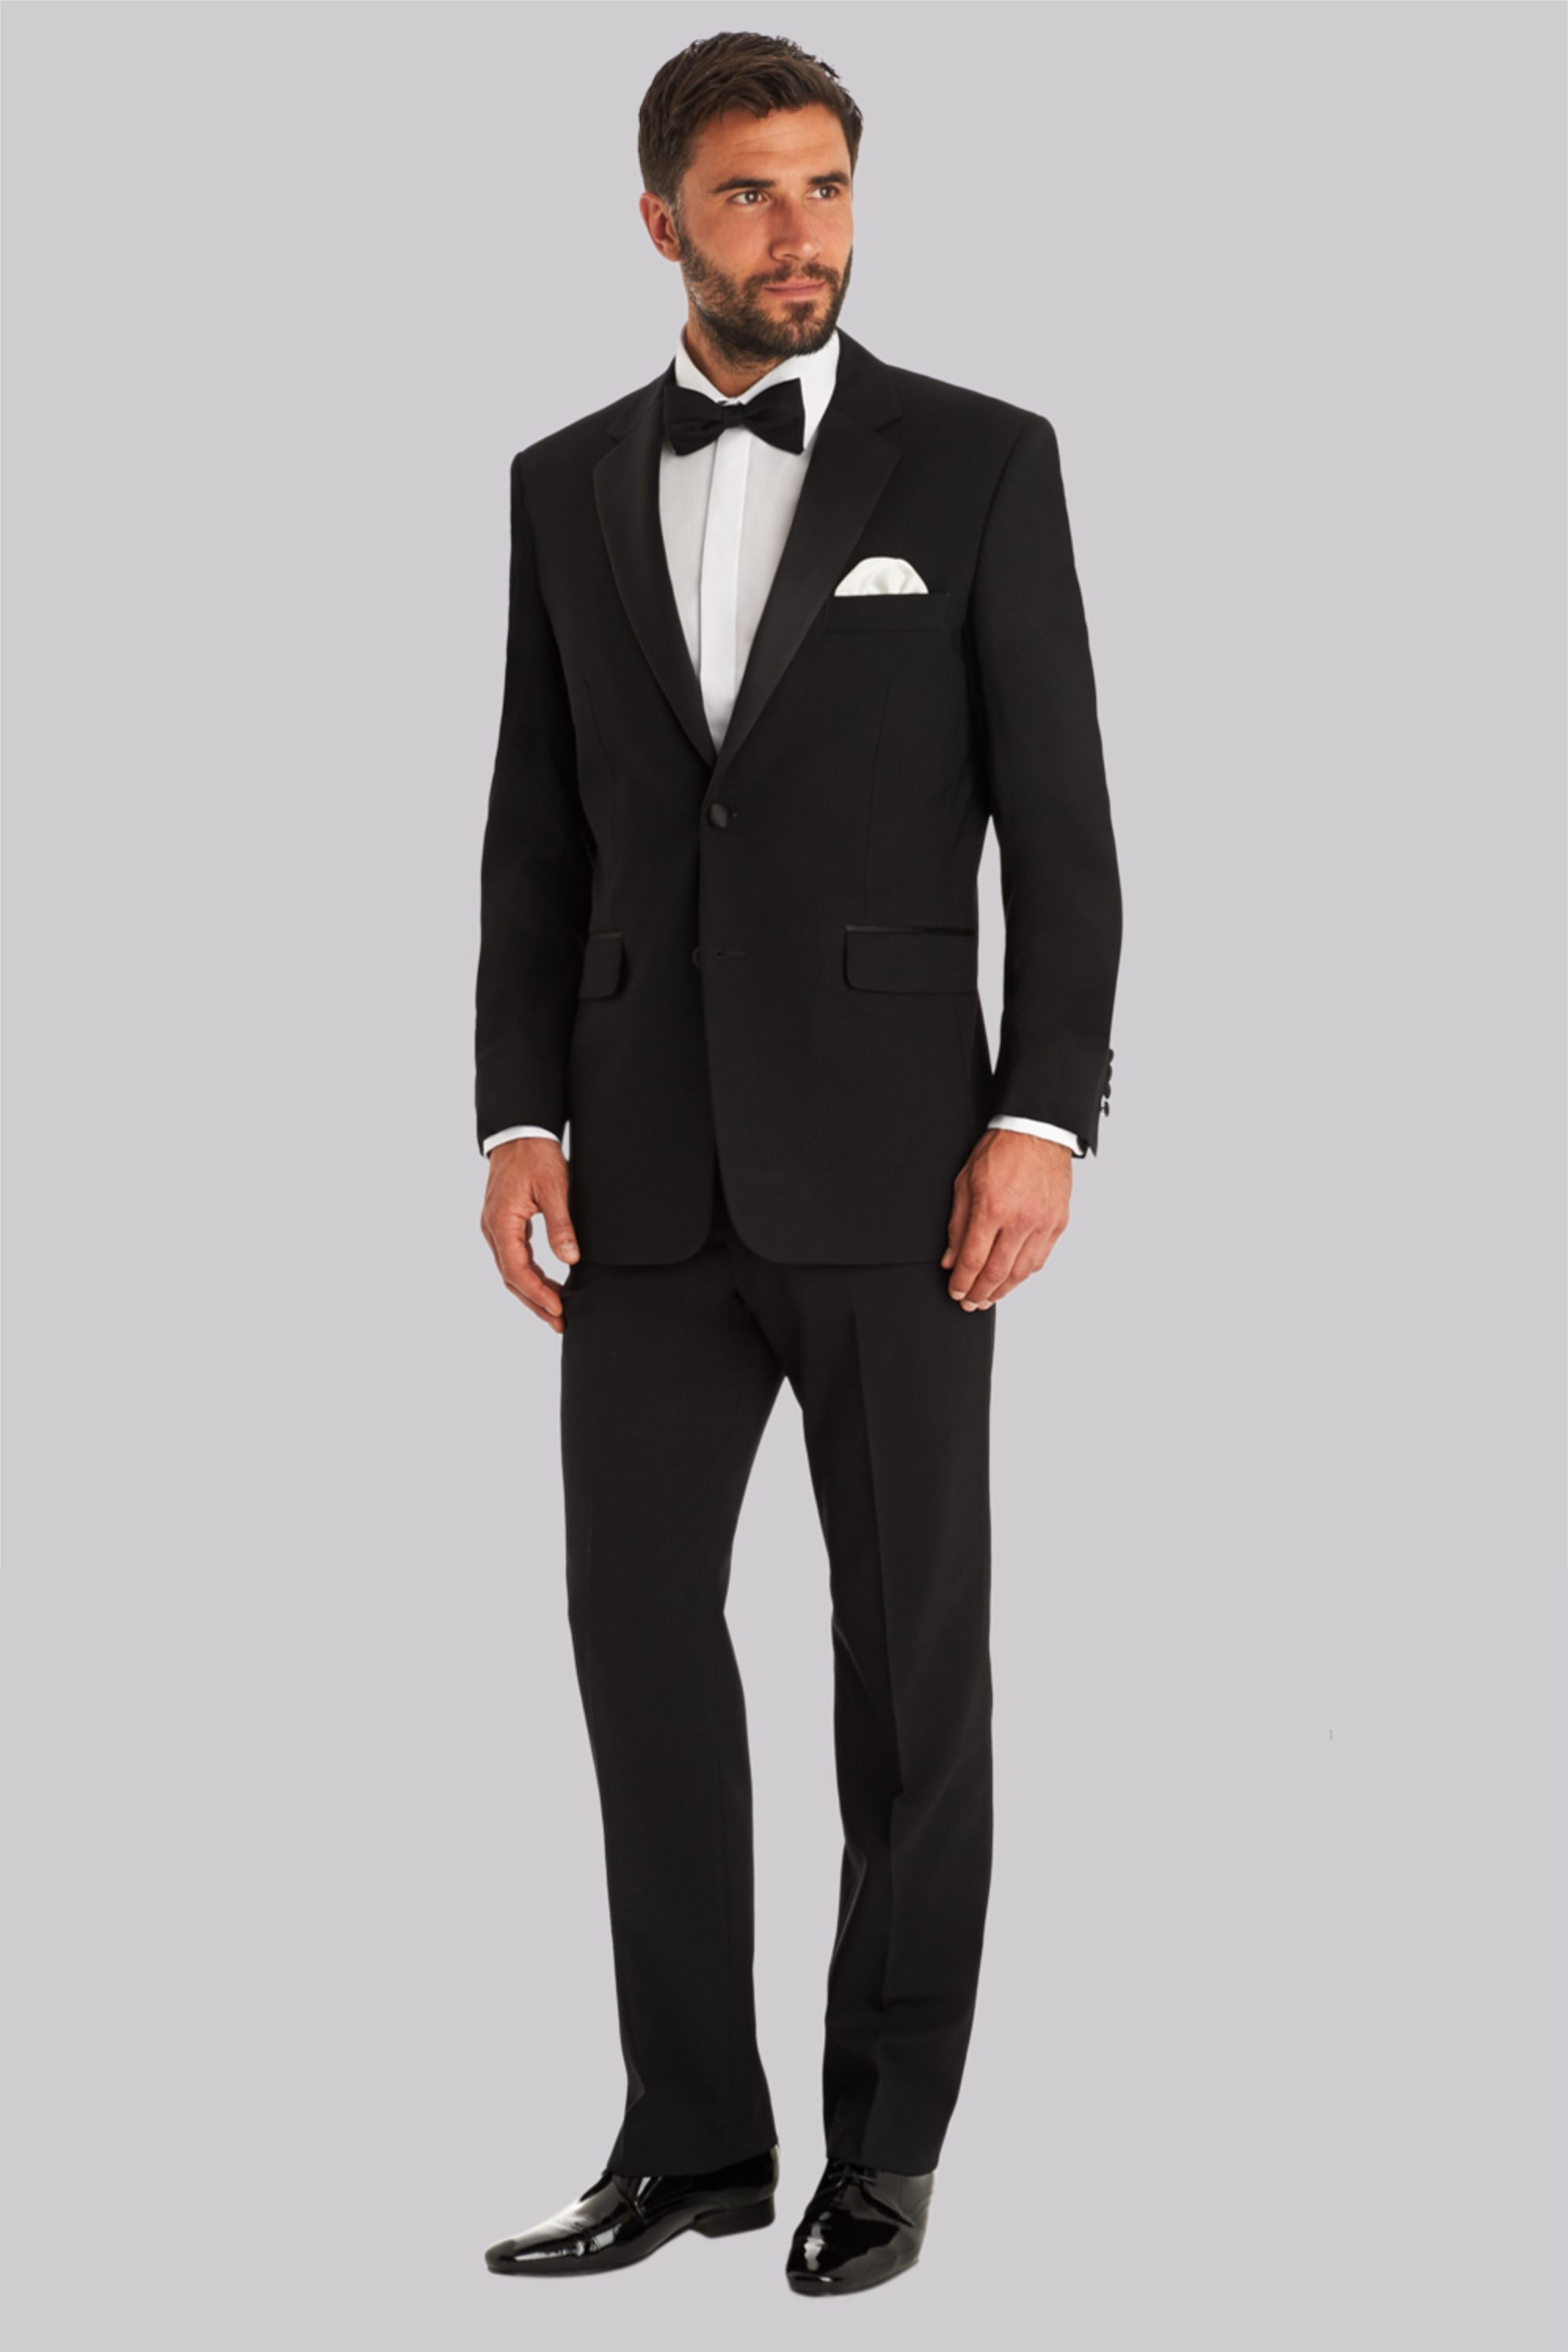 127a79e2b0b1 Moss Bros Regular Fit Black Notch Lapel Tuxedo